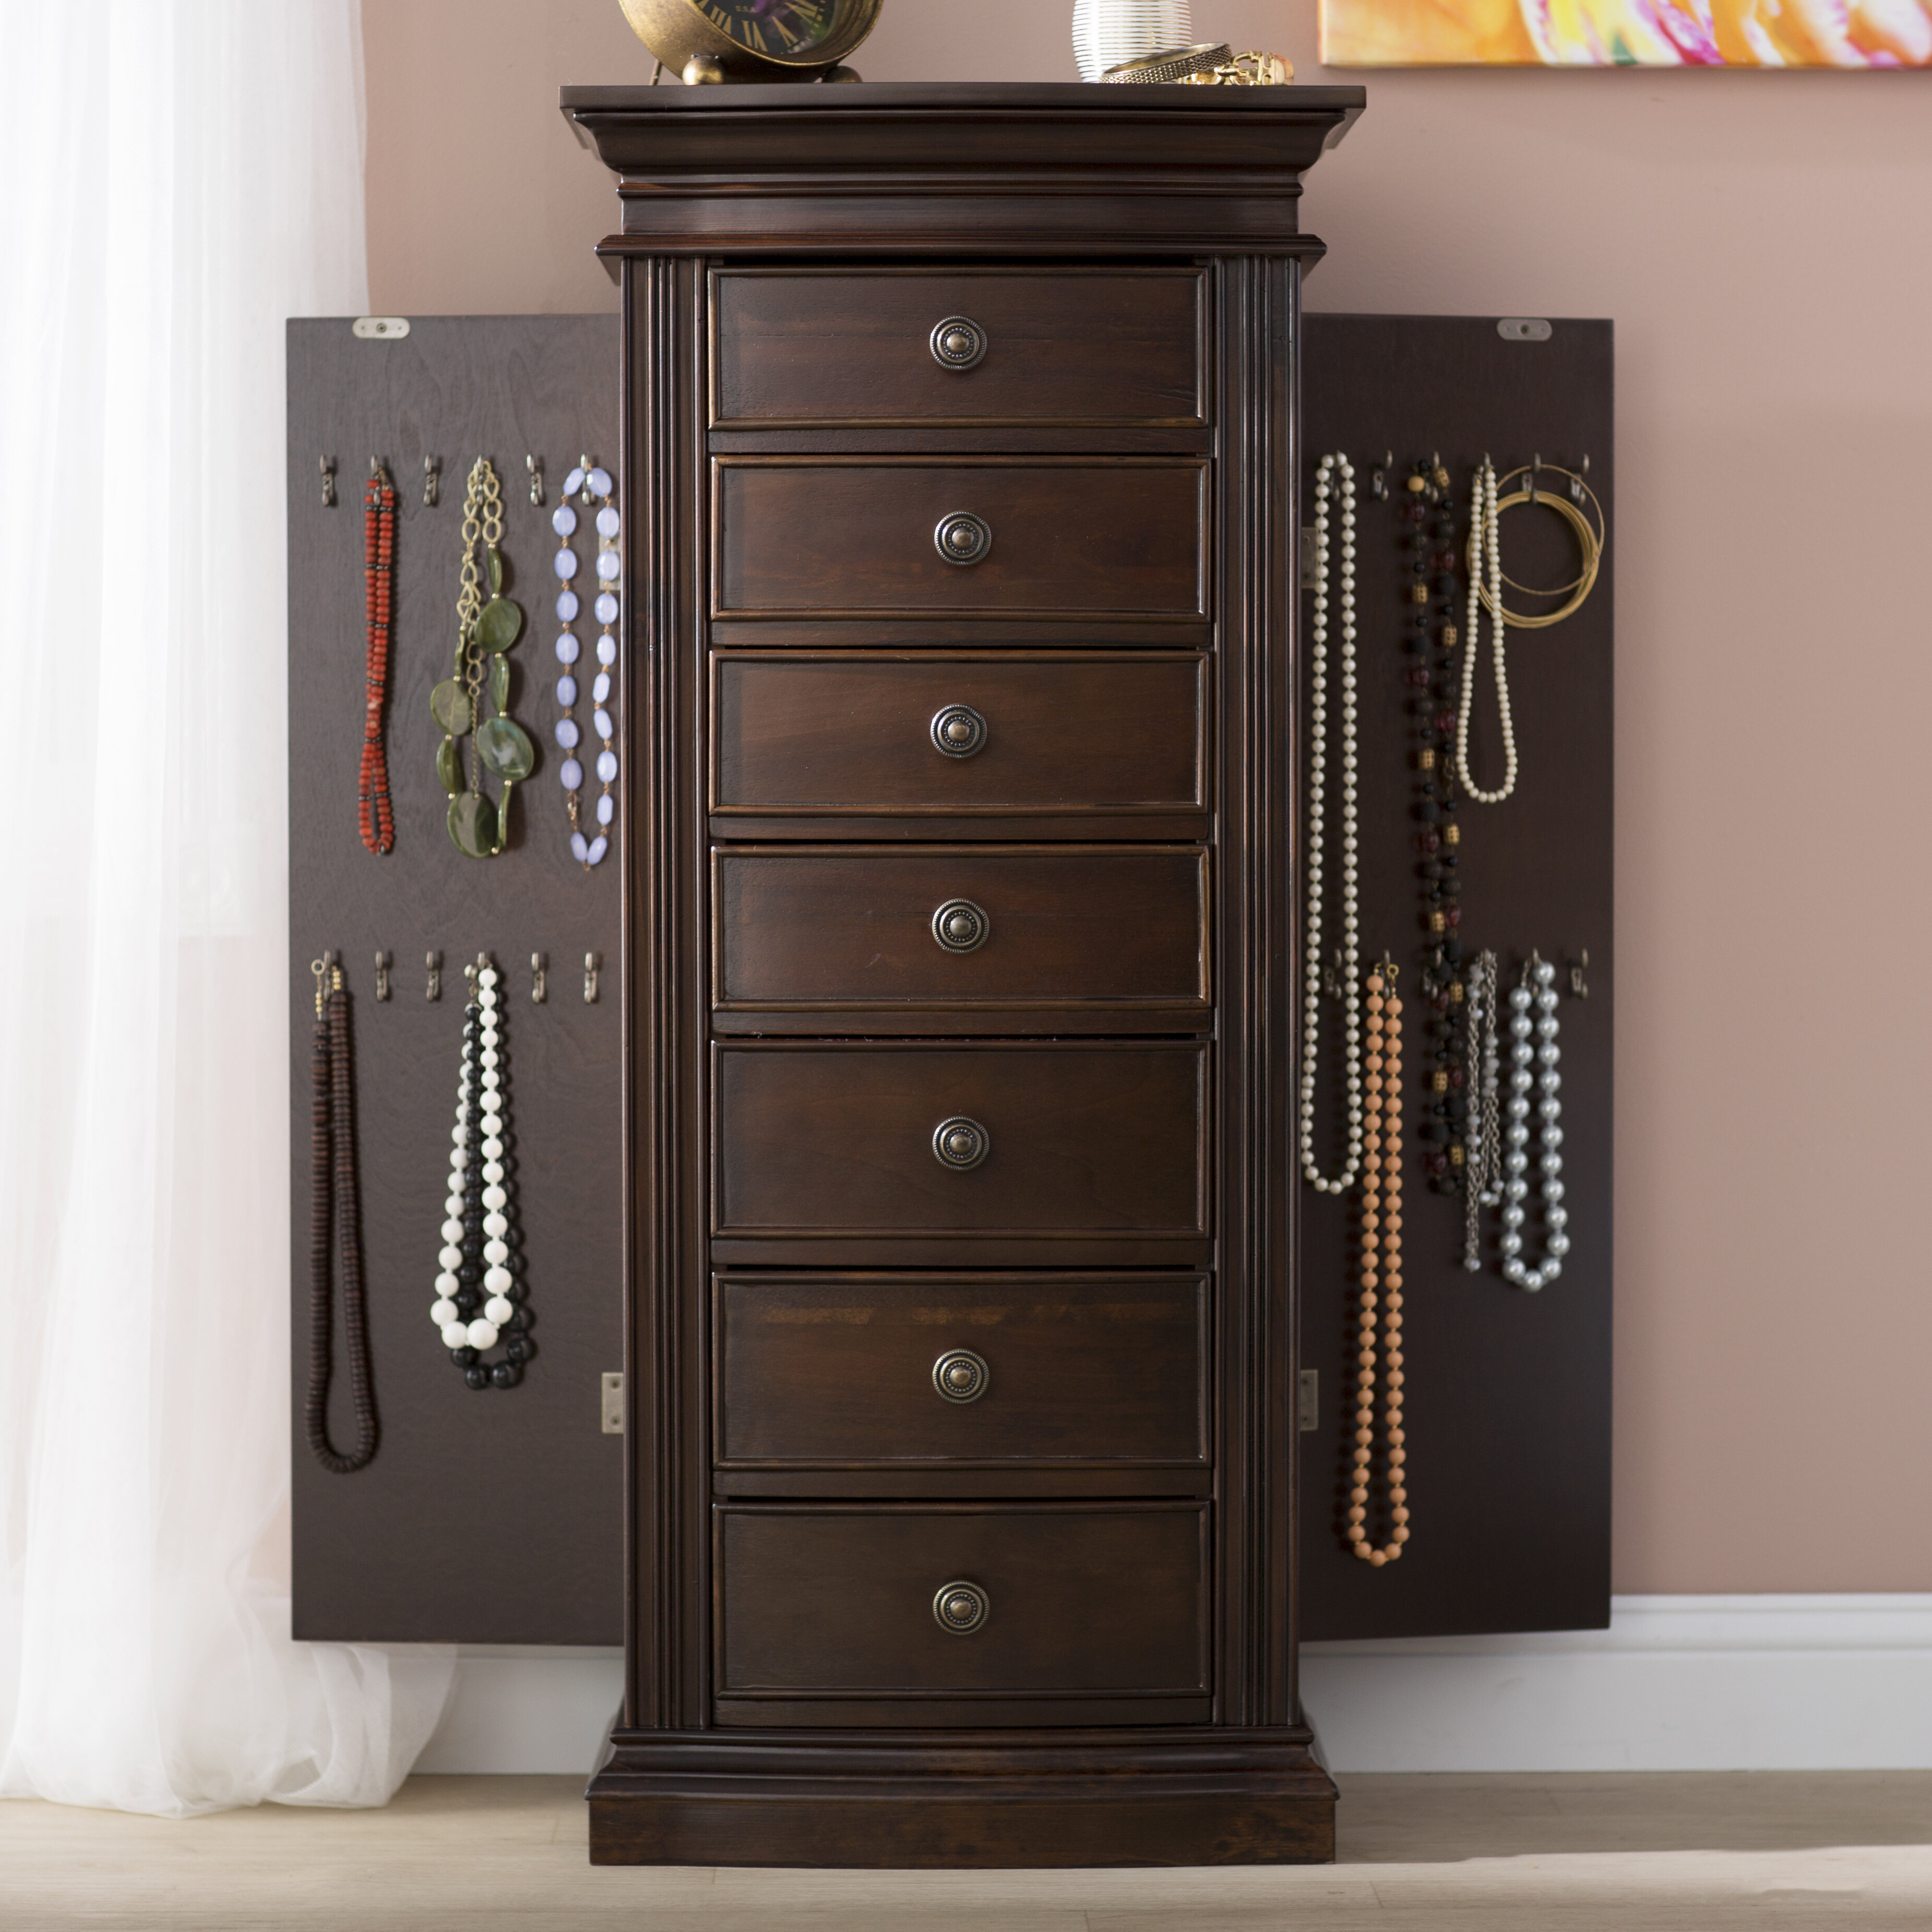 schroeder backer says cabinetry it bath suite in closet hidden behind woodworking added on with disappeared wood jewelry make pop a the closets but of to how started just out storage master ruck so glass kind knob really create mode we